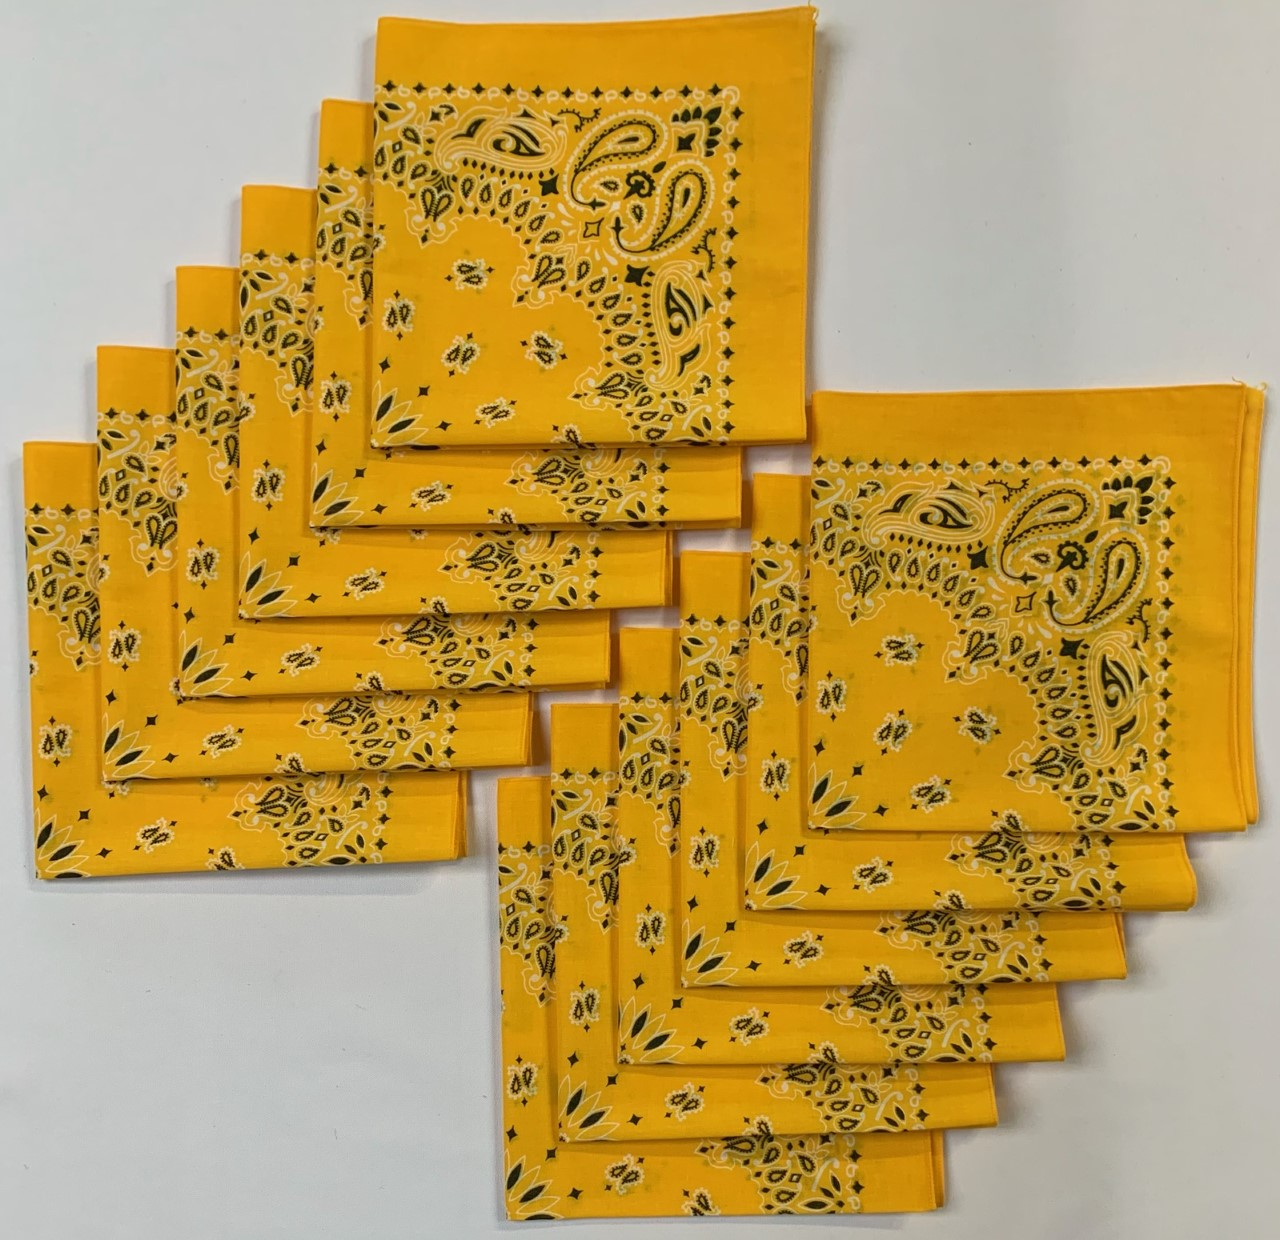 "Made in the USA Lemon Paisley Bandanas 12 Pk, 22 x 22"" Cotton"